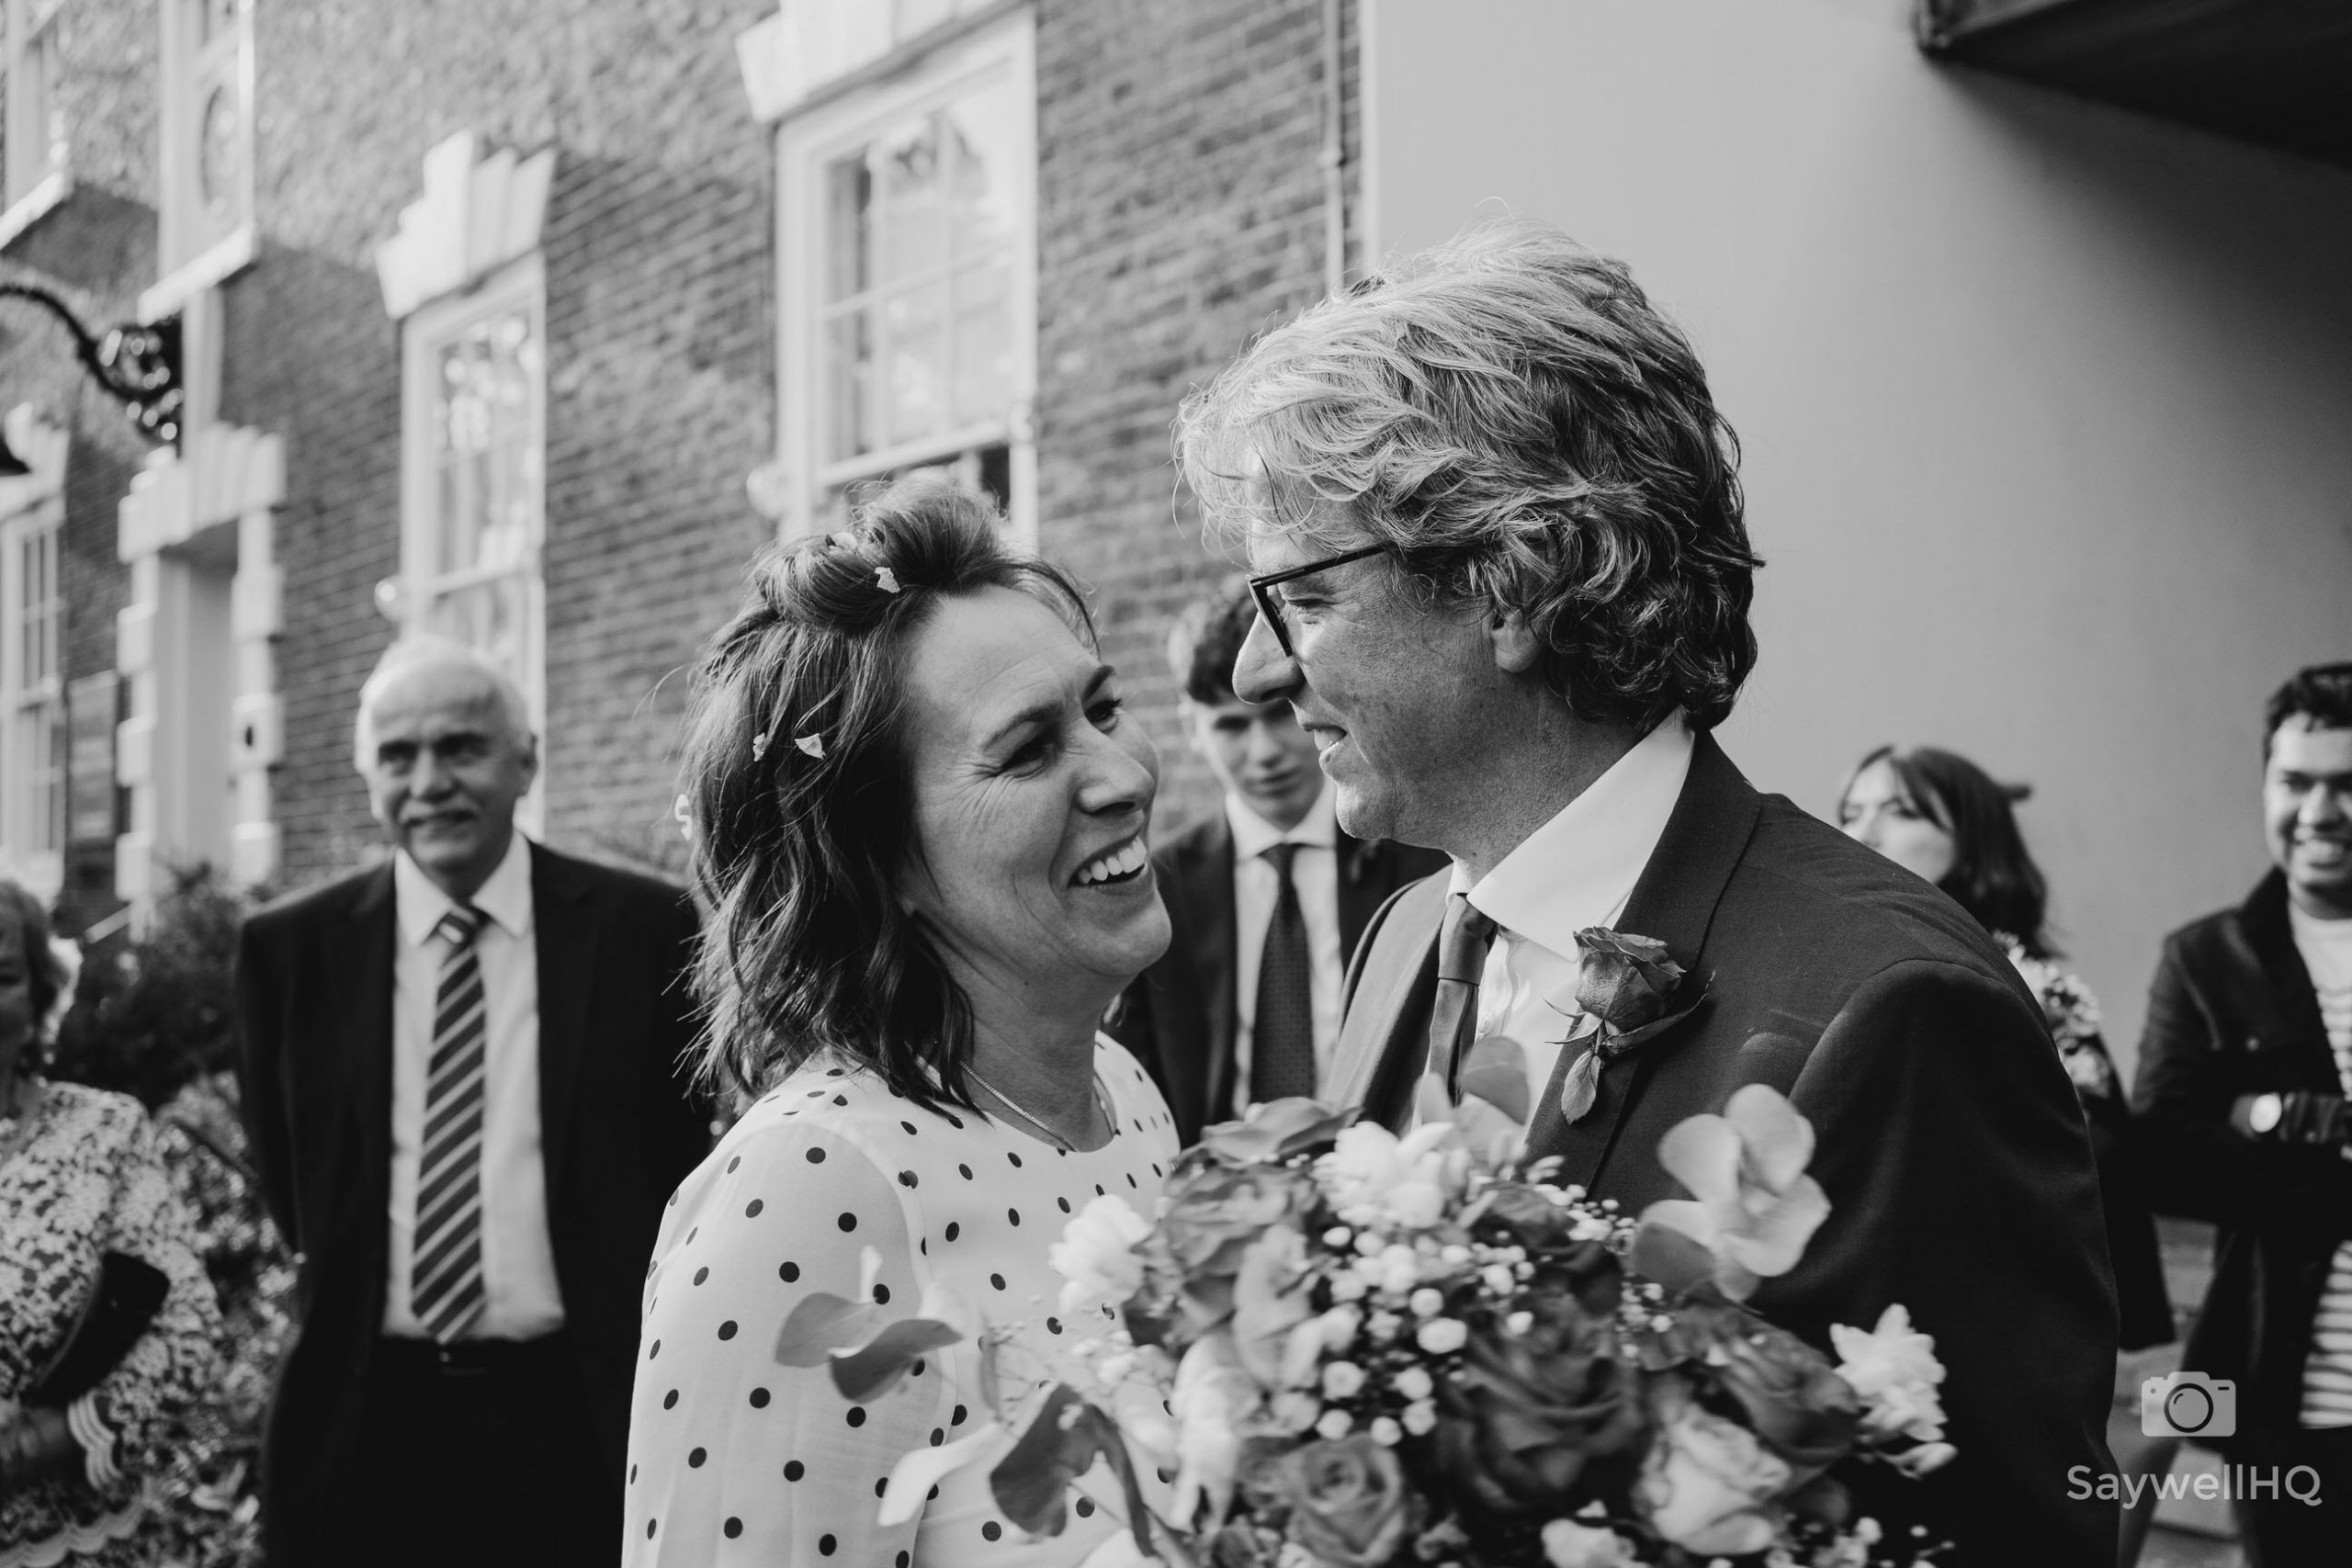 West Bridgford Hall Wedding Photography - Bride and groom enjoy a moment after the confetti throwing